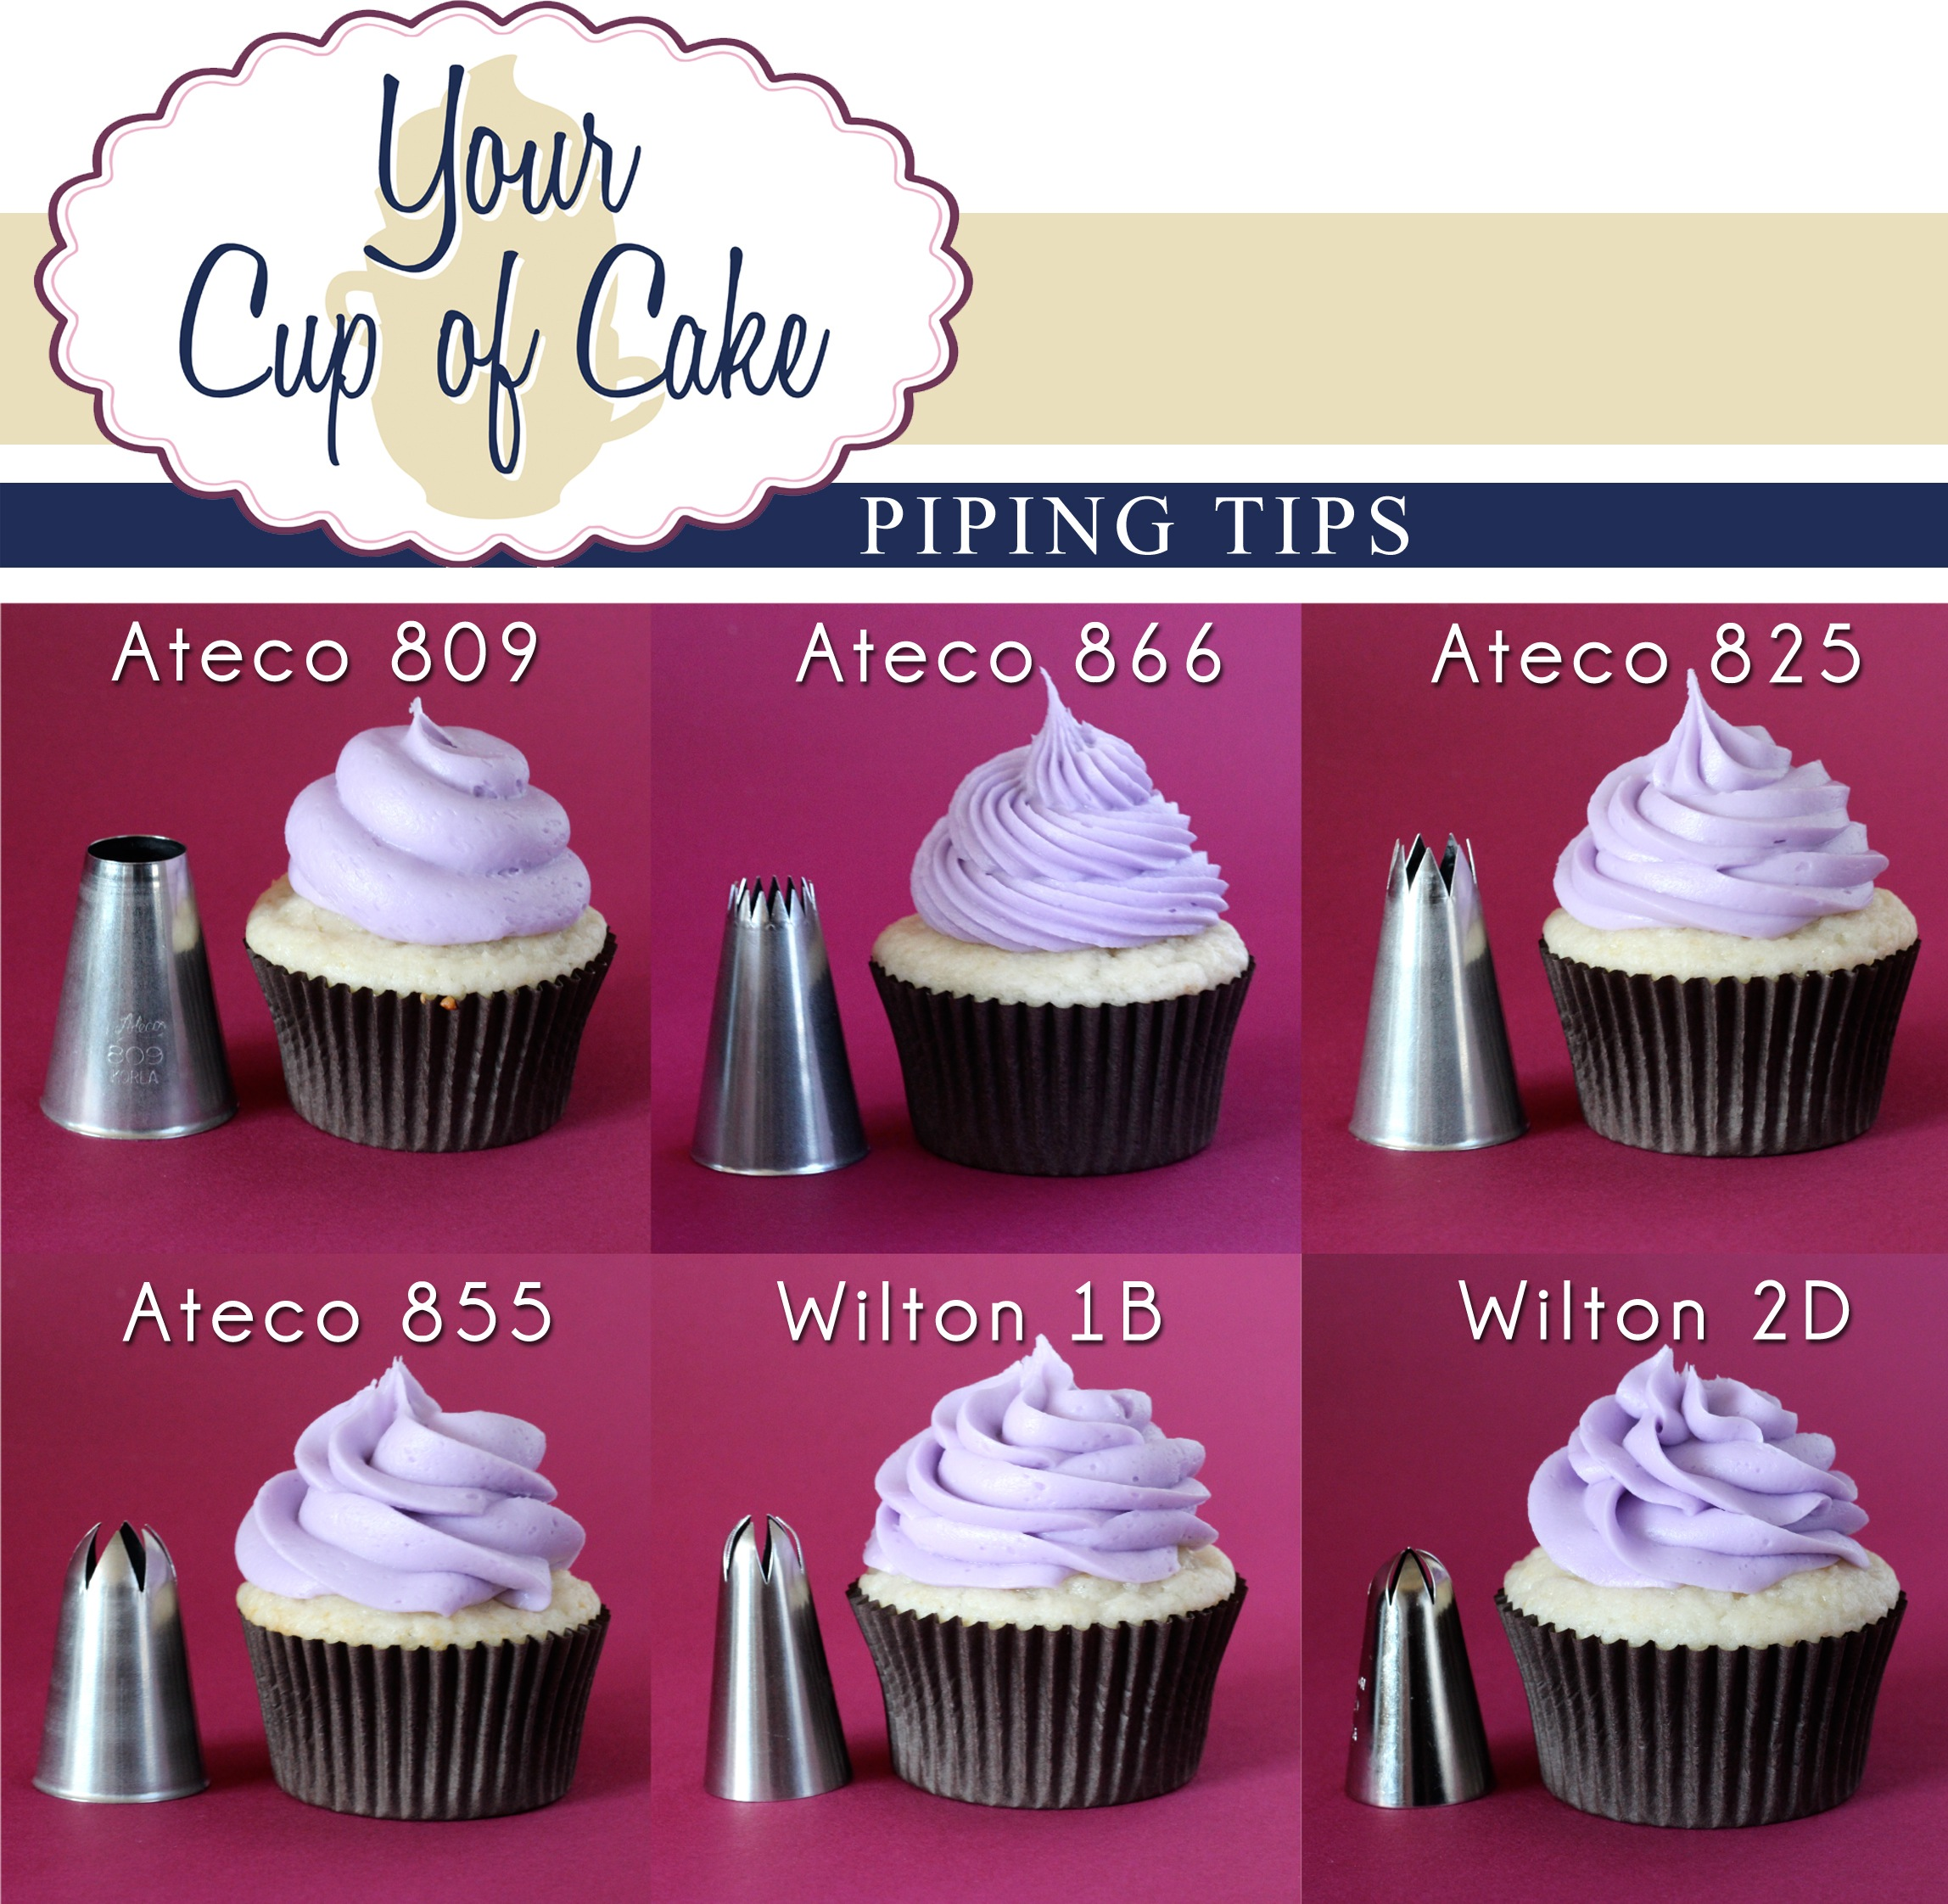 Cake Decorating Icing Tips : Piping Tips - Your Cup of Cake